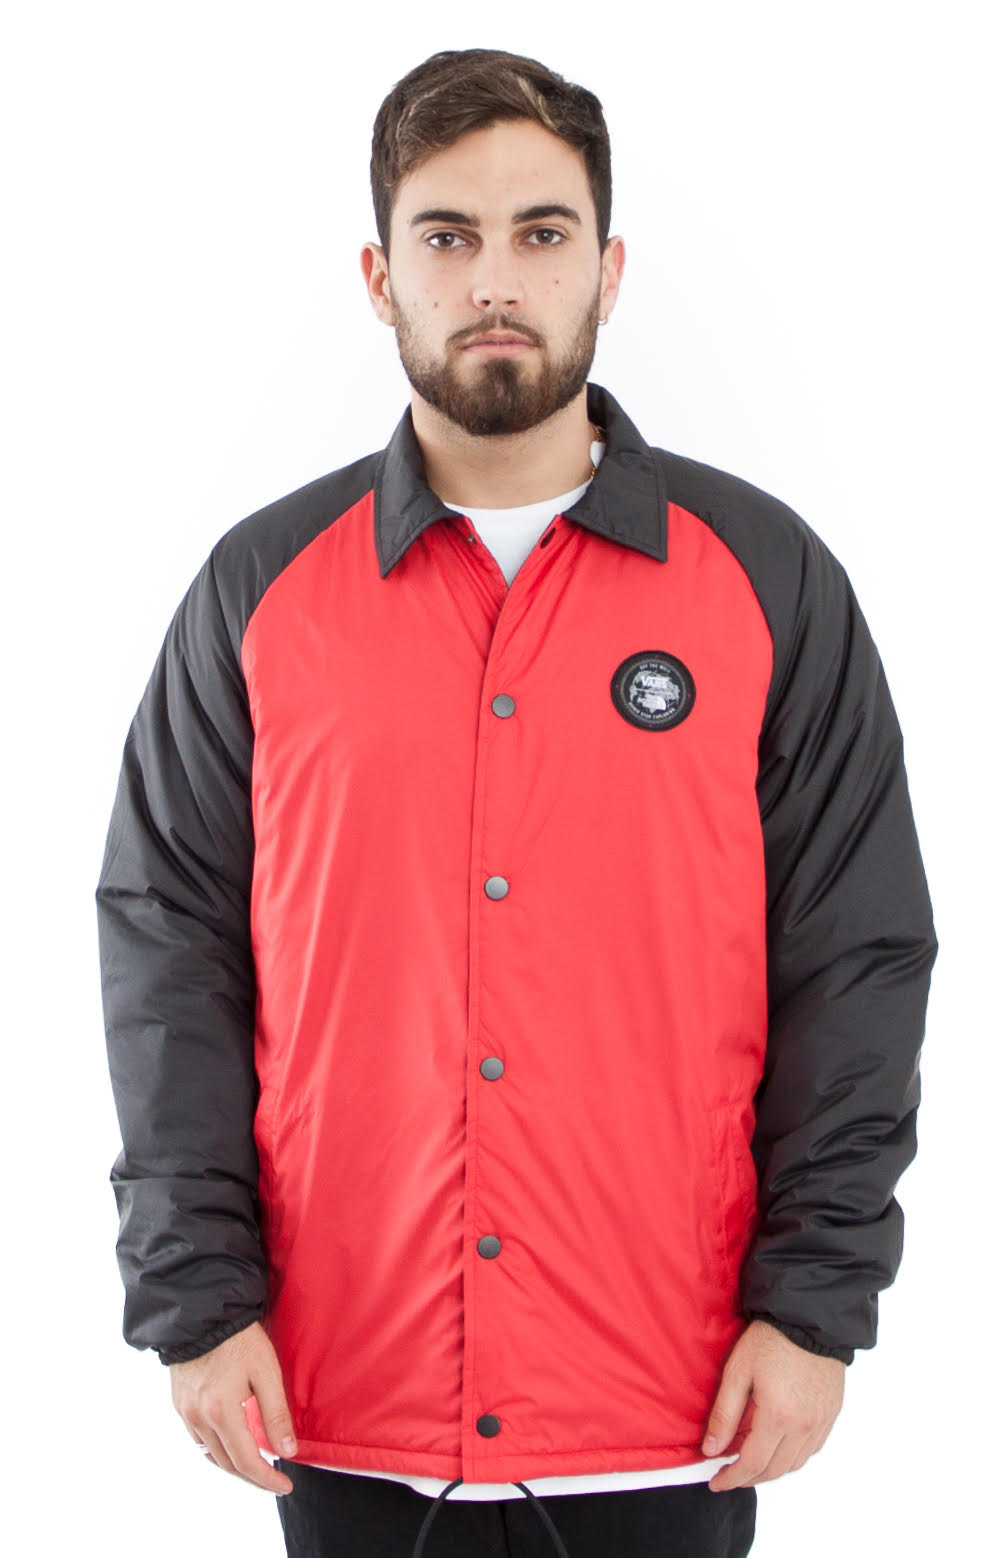 36c8e6f3c5 Torrey Jacket - Red. Loading... Home · Brands · Vans x The North Face ...